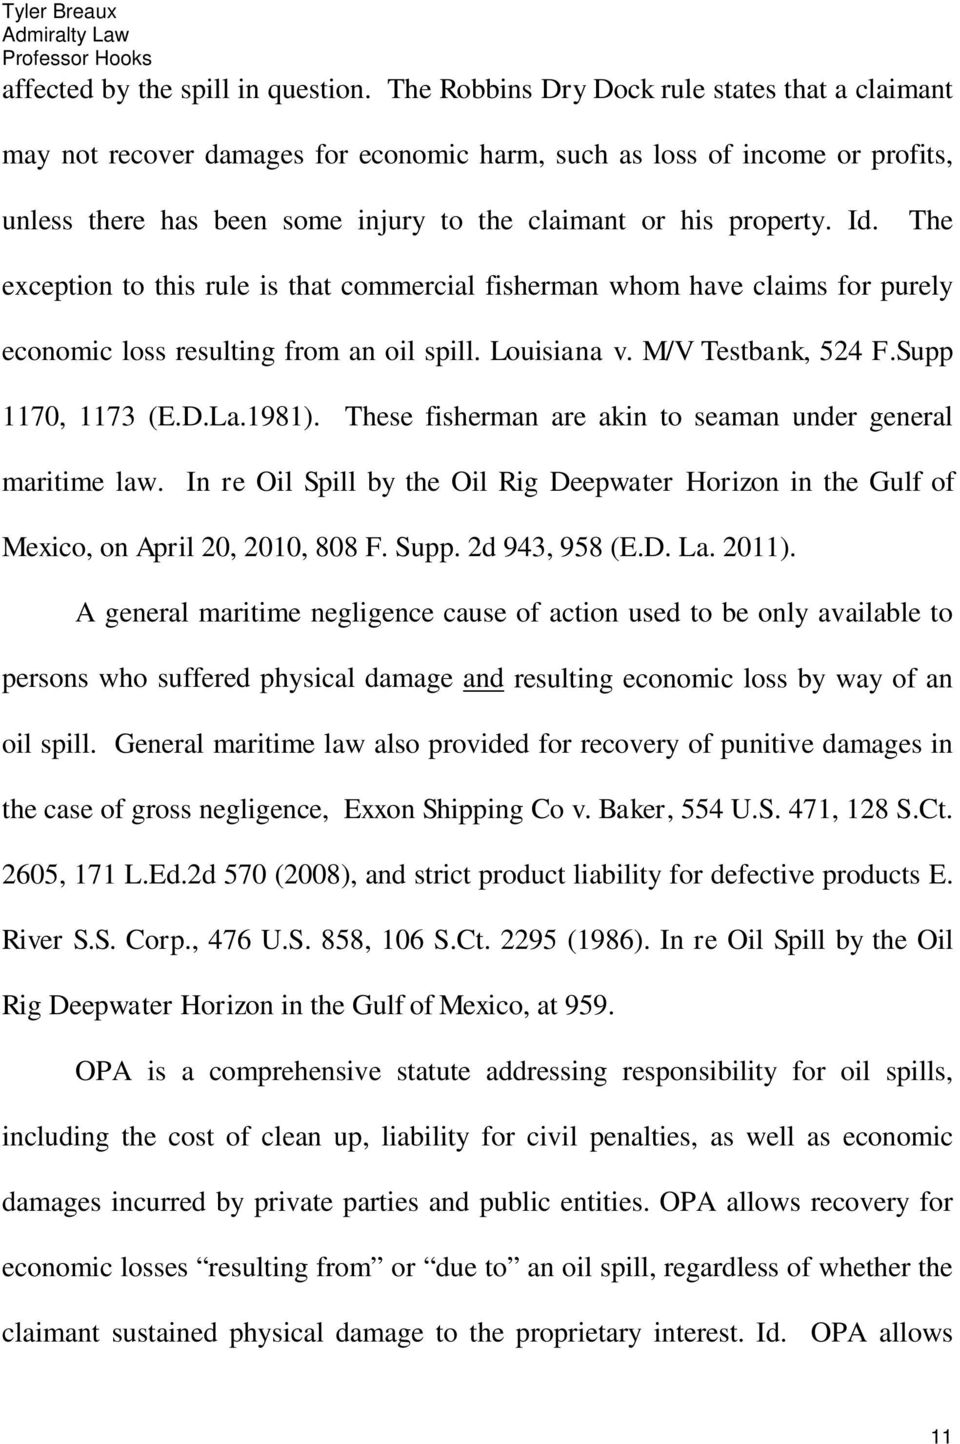 The exception to this rule is that commercial fisherman whom have claims for purely economic loss resulting from an oil spill. Louisiana v. M/V Testbank, 524 F.Supp 1170, 1173 (E.D.La.1981).